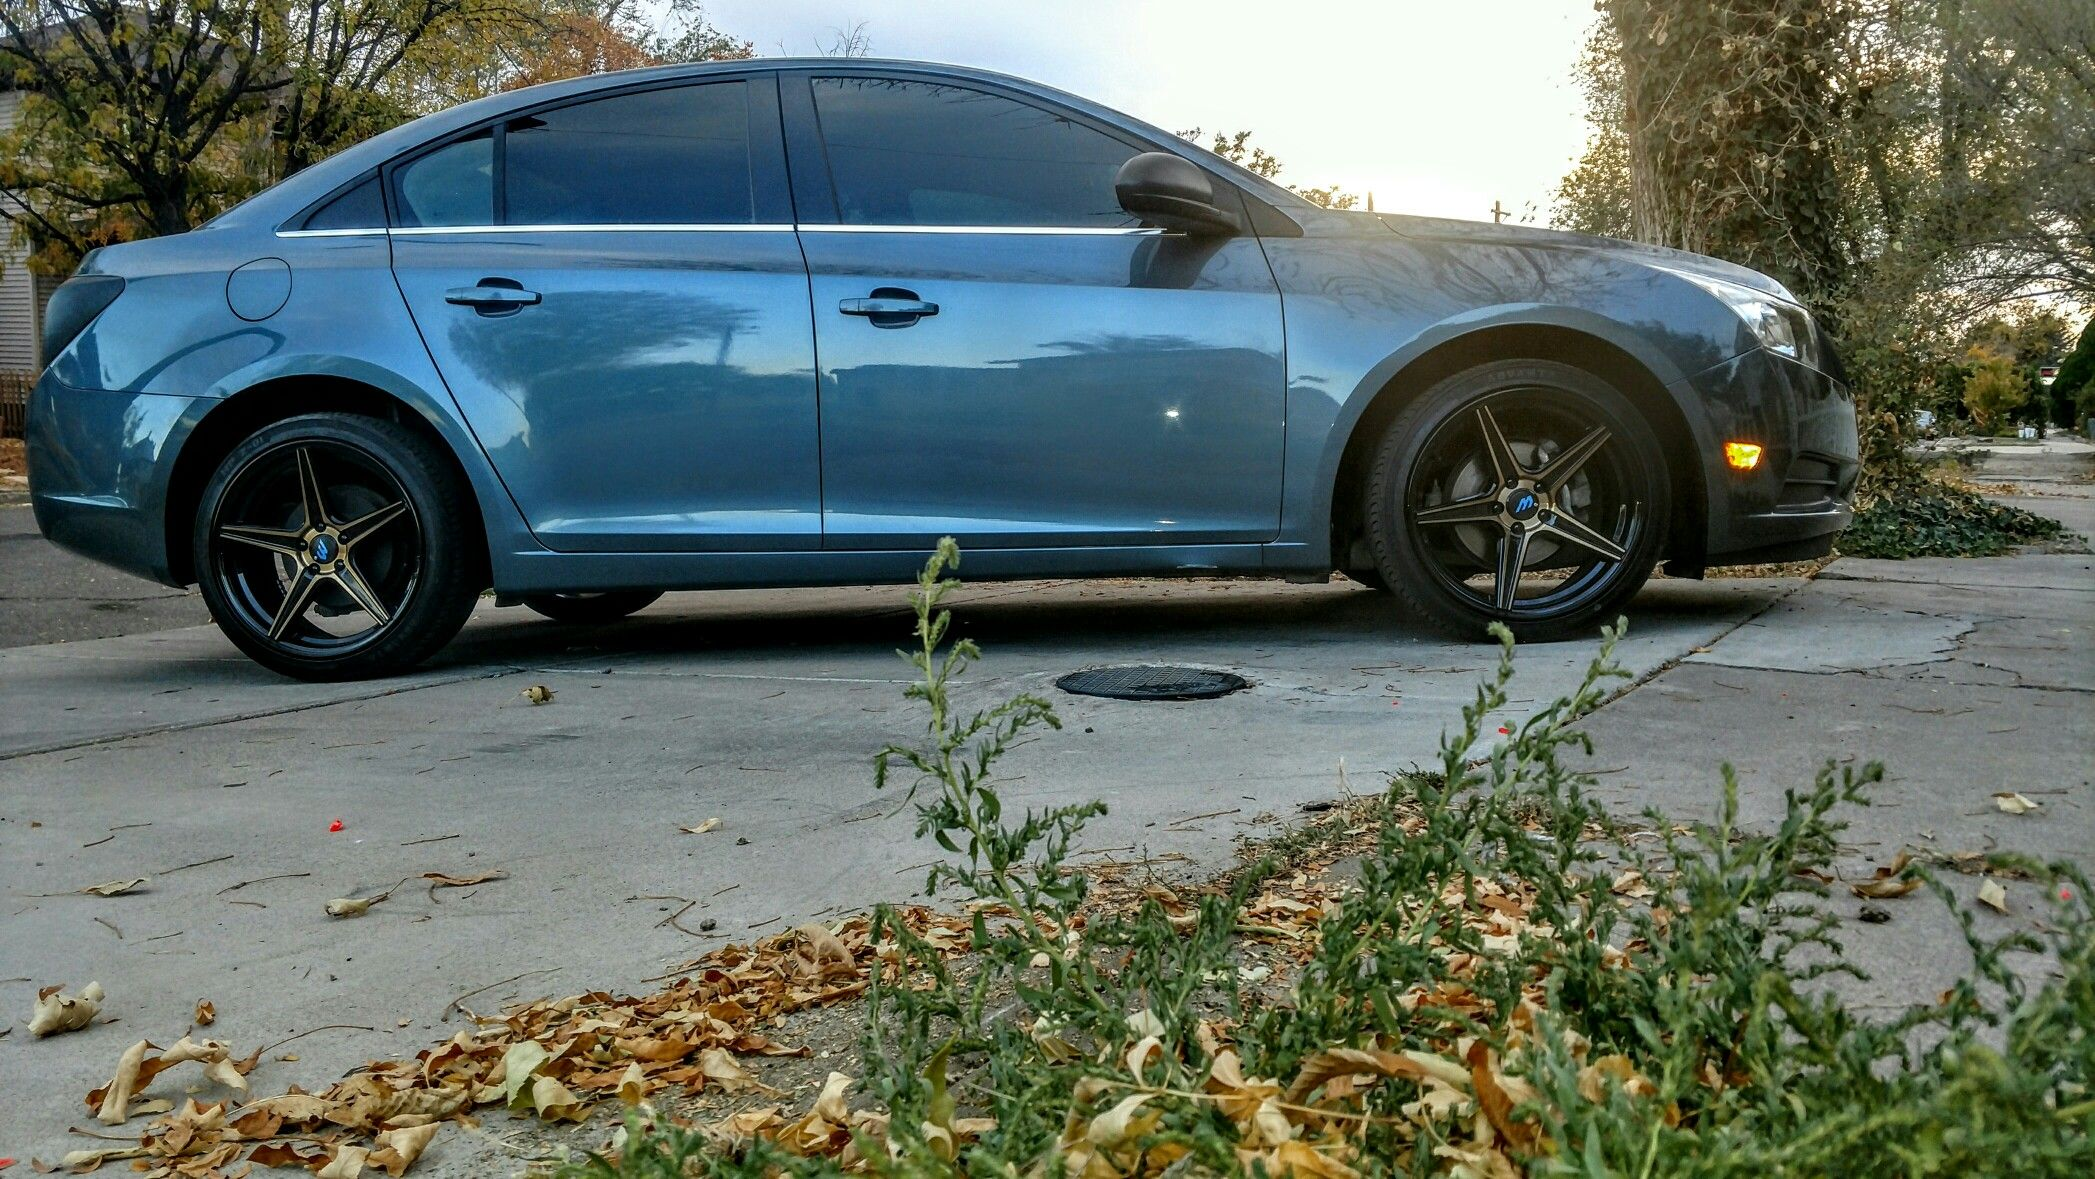 Chevy Cruze On 18s Chevy Cruze On 18s Chevy Cruze Cruze Chevy